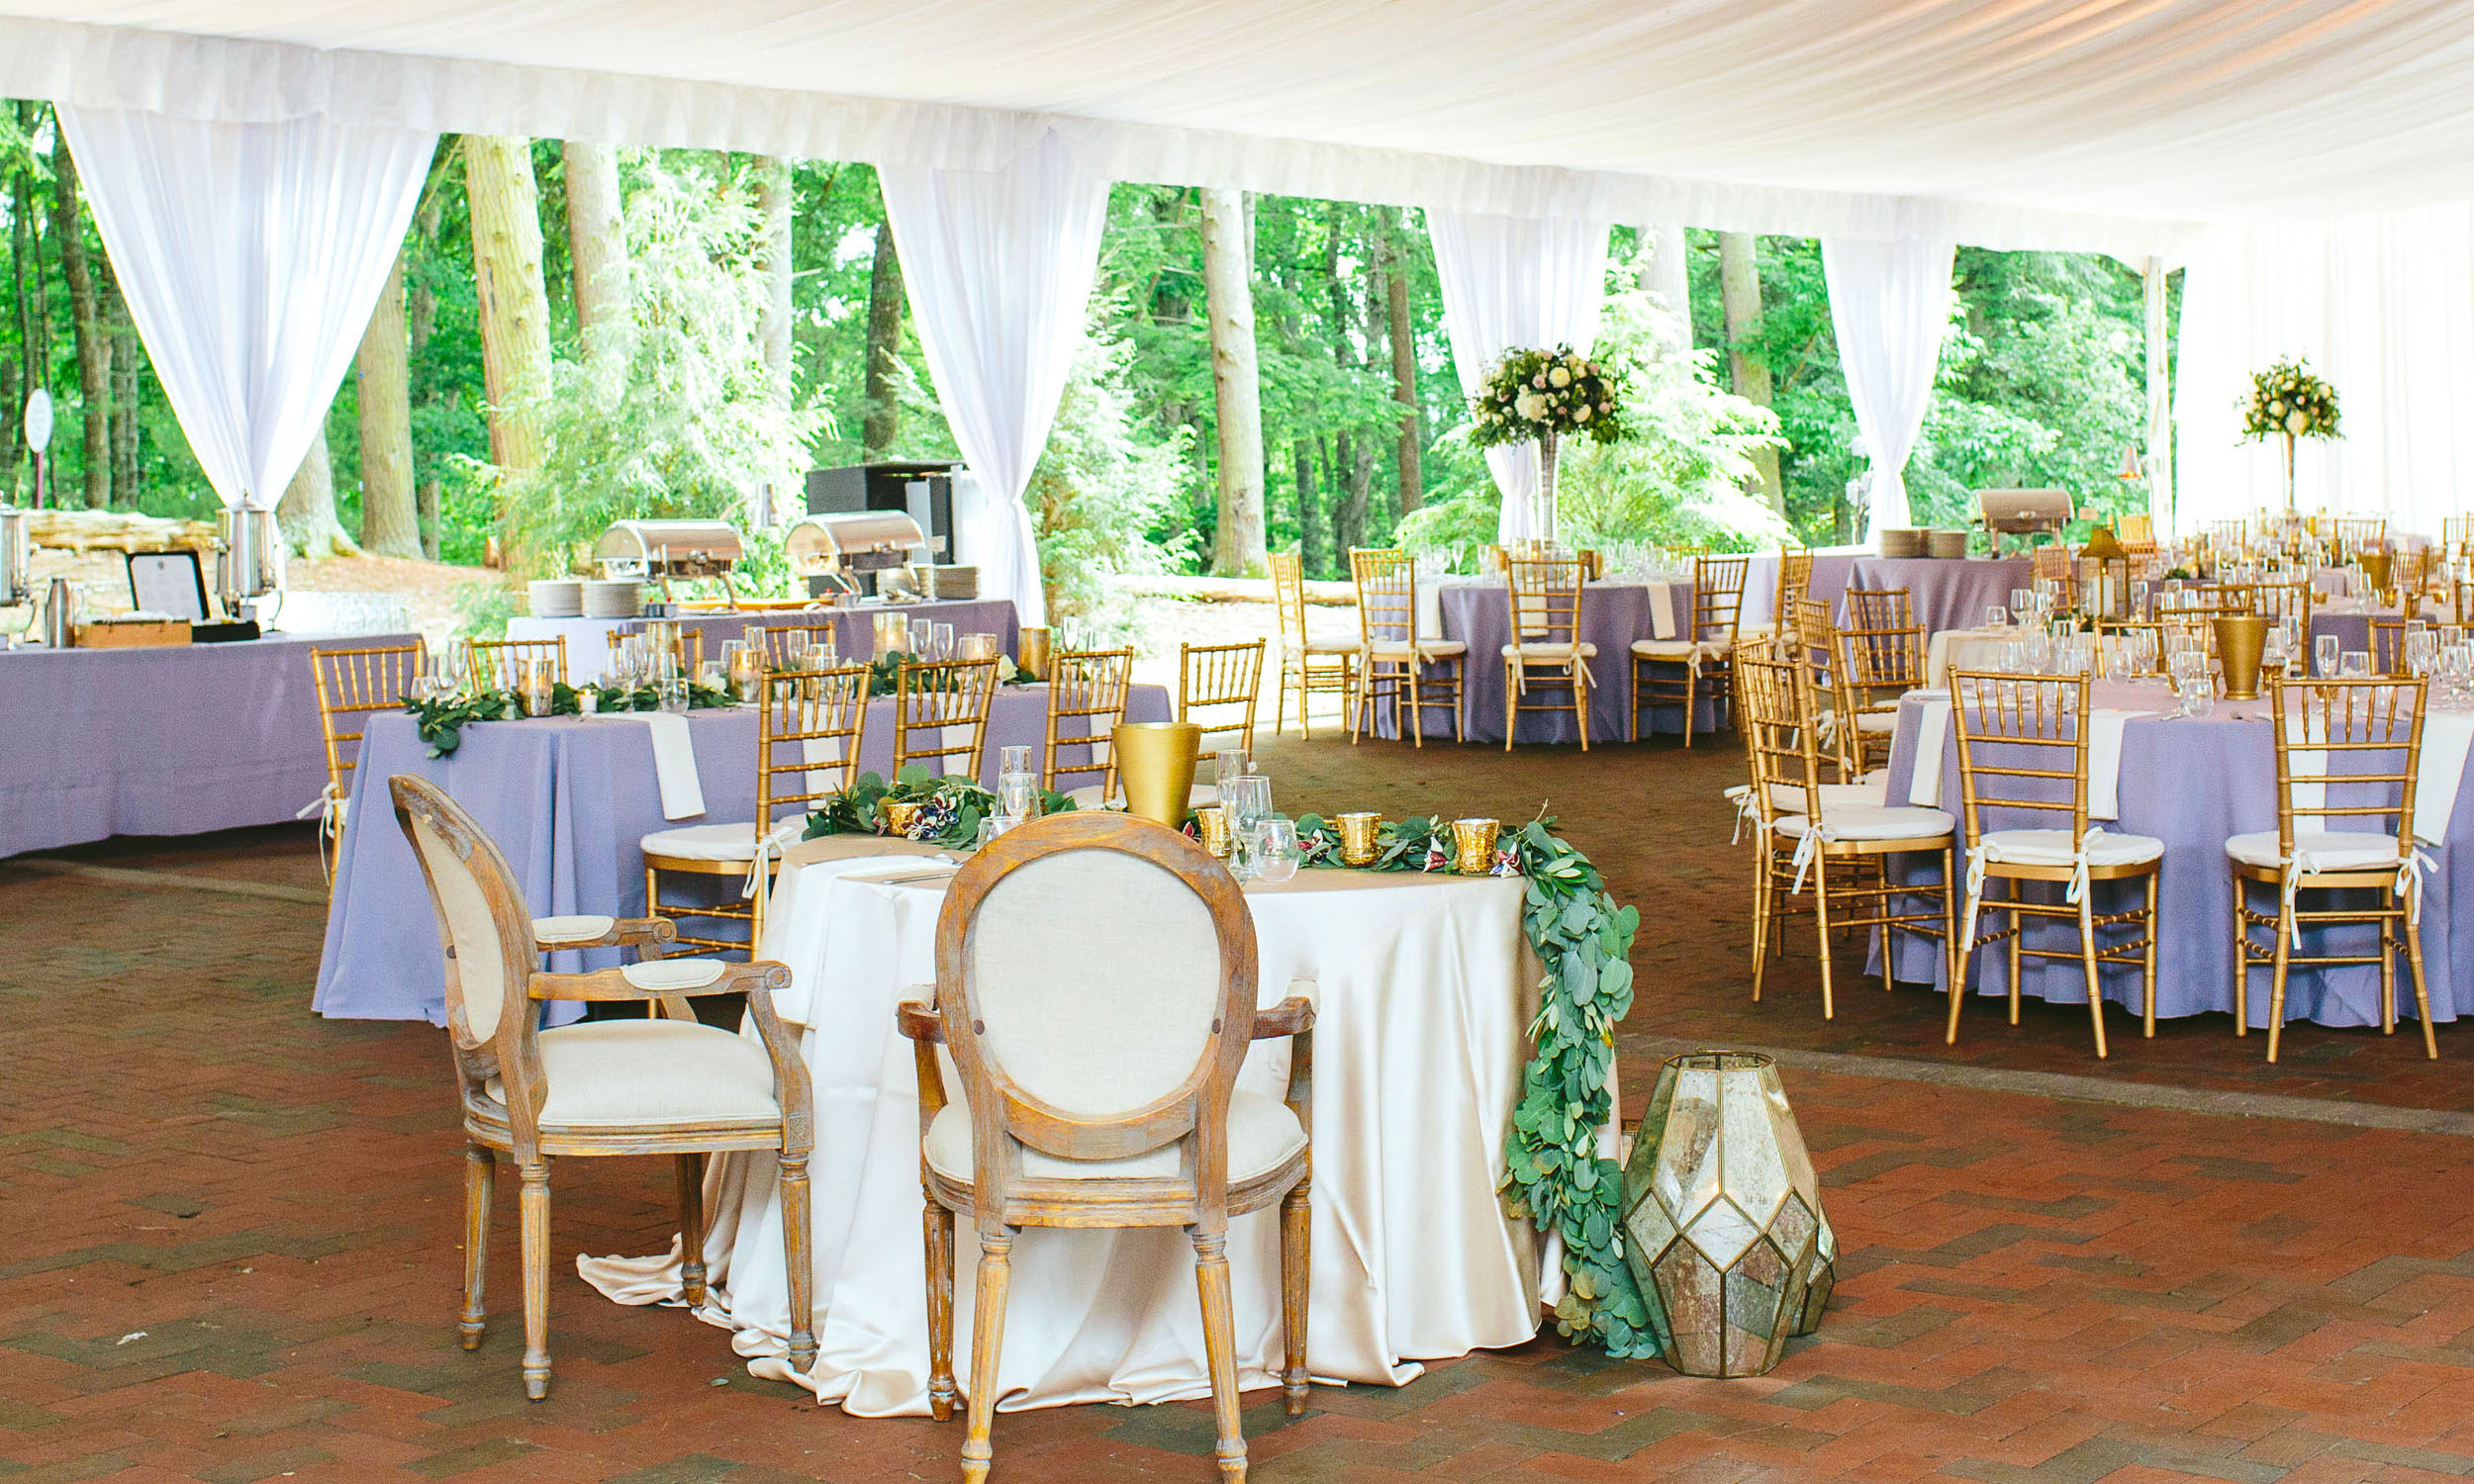 places to borrow tables and chairs massaging recliner chair party rentals your premier event rental source learn more